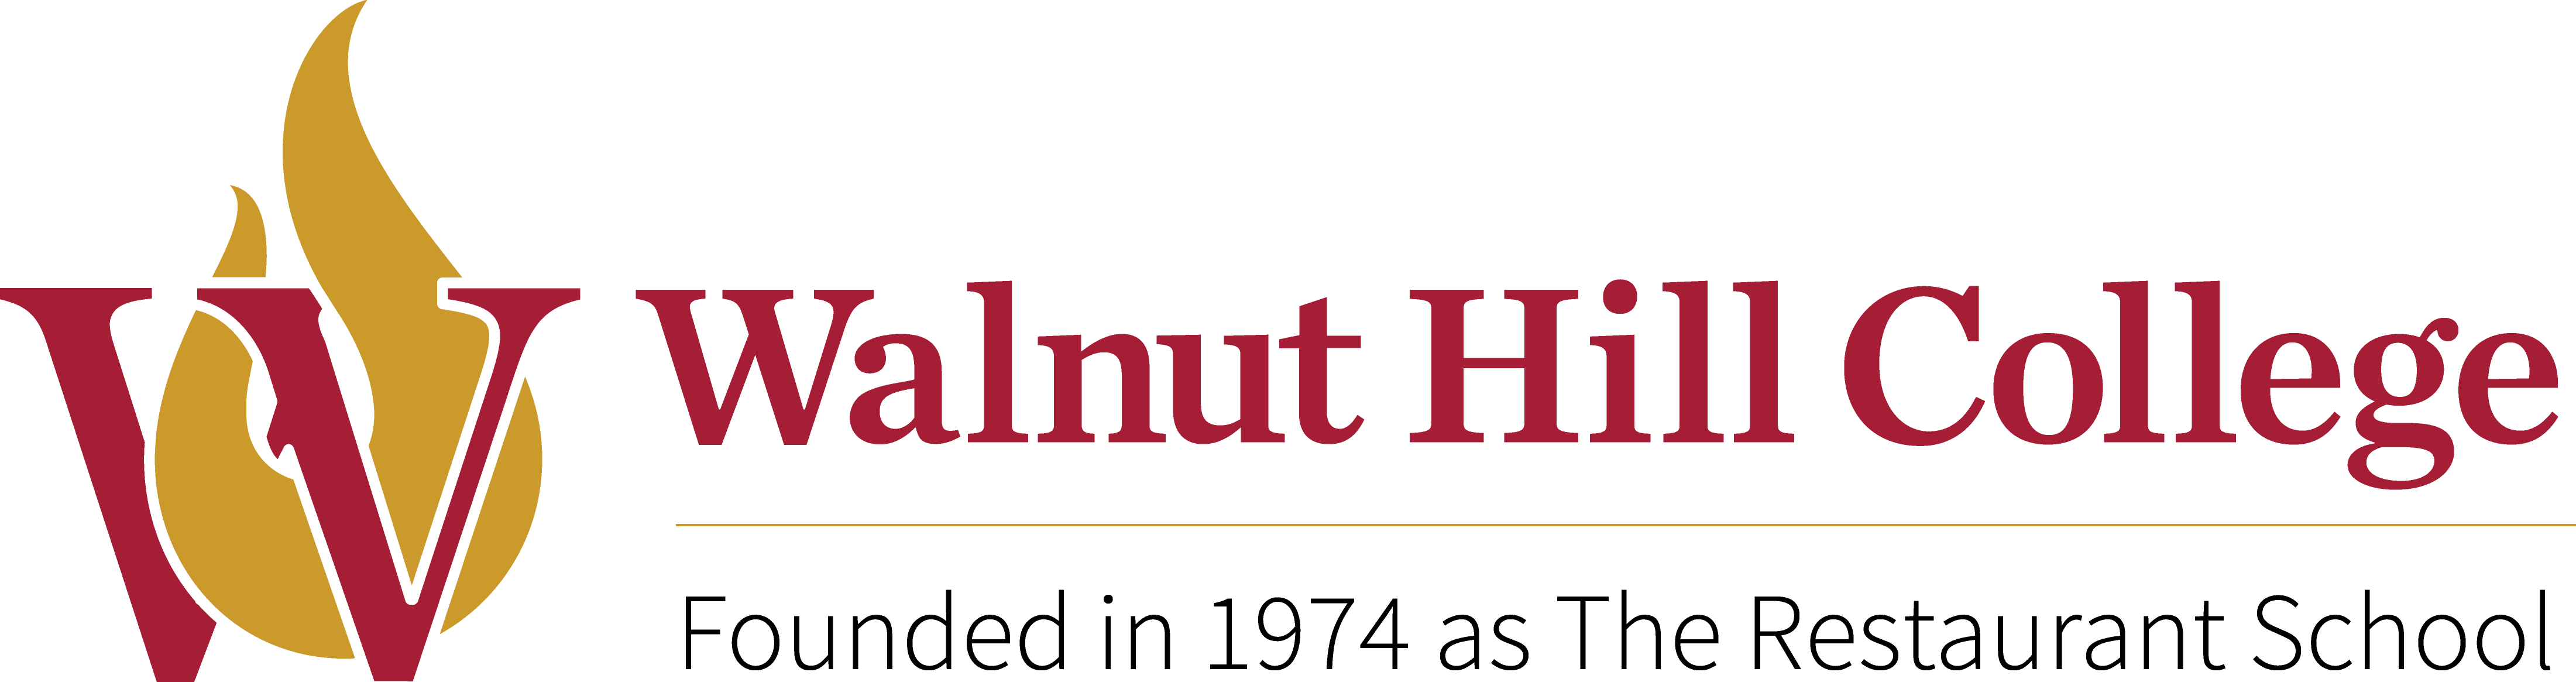 Walnut Hill College logo with website link